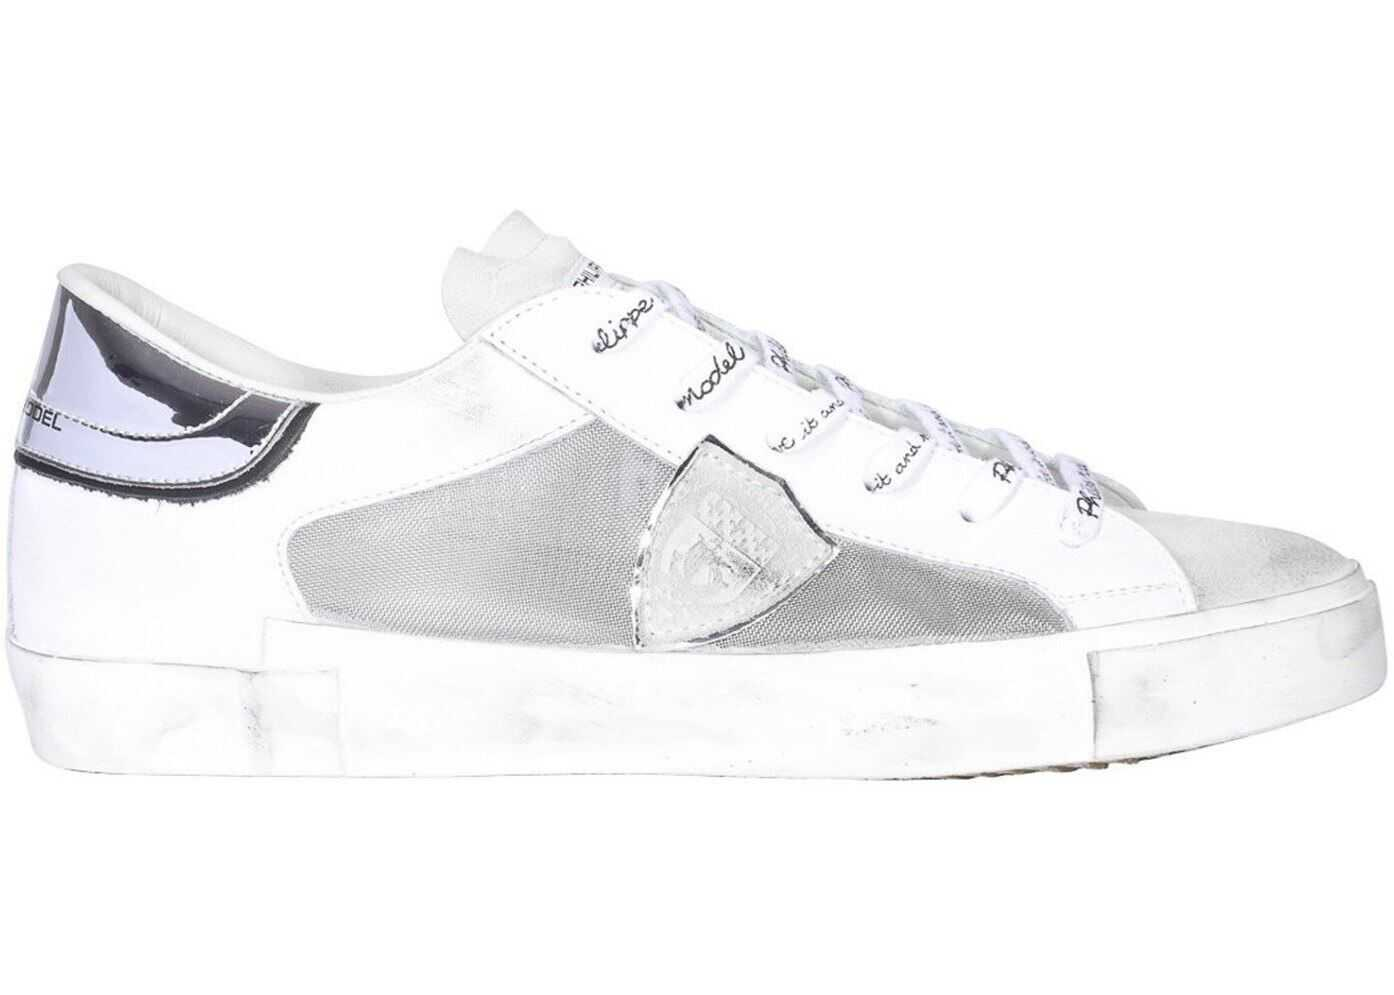 Philippe Model Prsx Tech Fabric And Leather Sneakers White